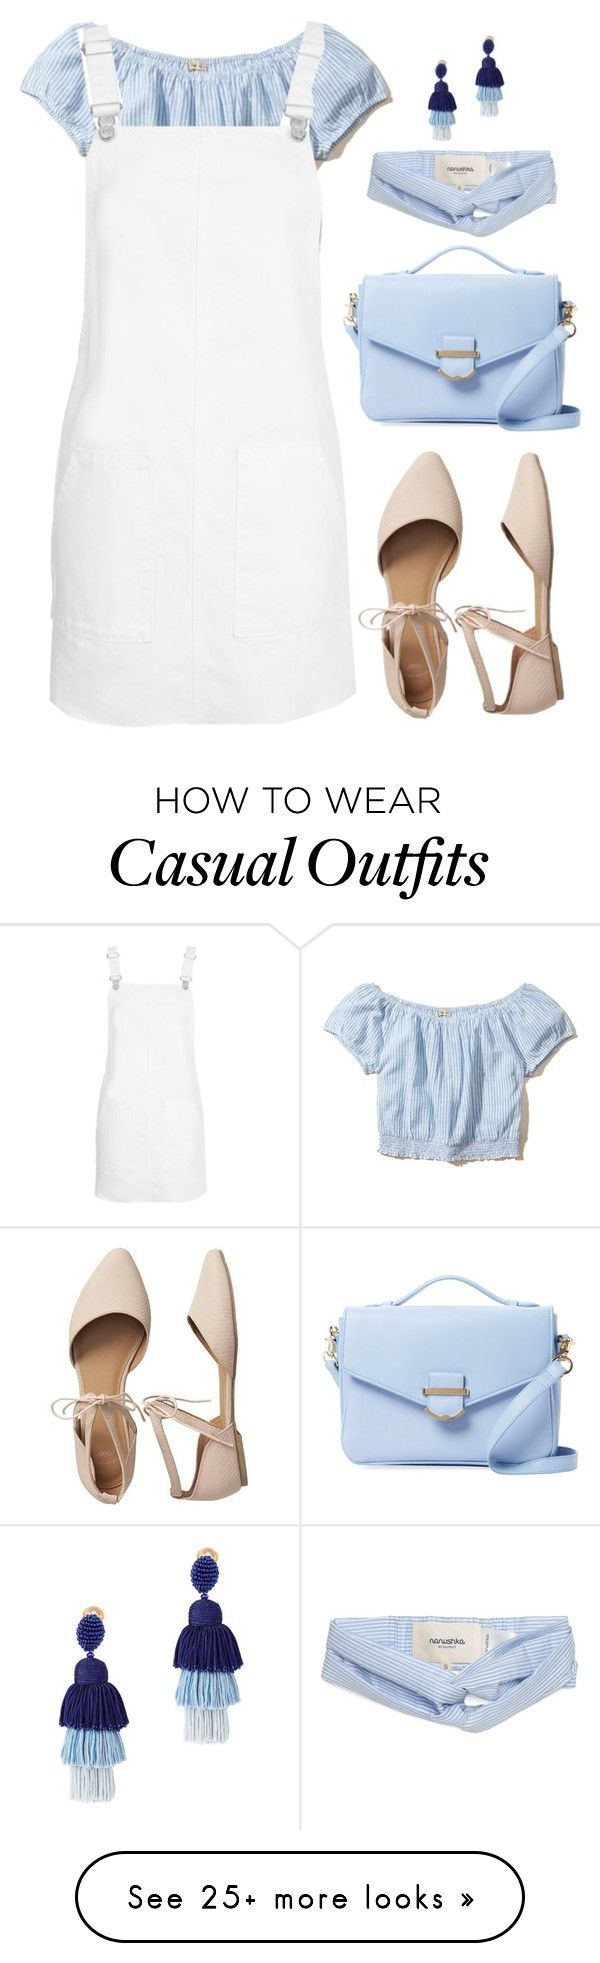 """casual look for today"" by kikyxoxo on Polyvore featuring Hollister Co., Topshop, Gap, Cynthia Rowley and Oscar de la Renta"